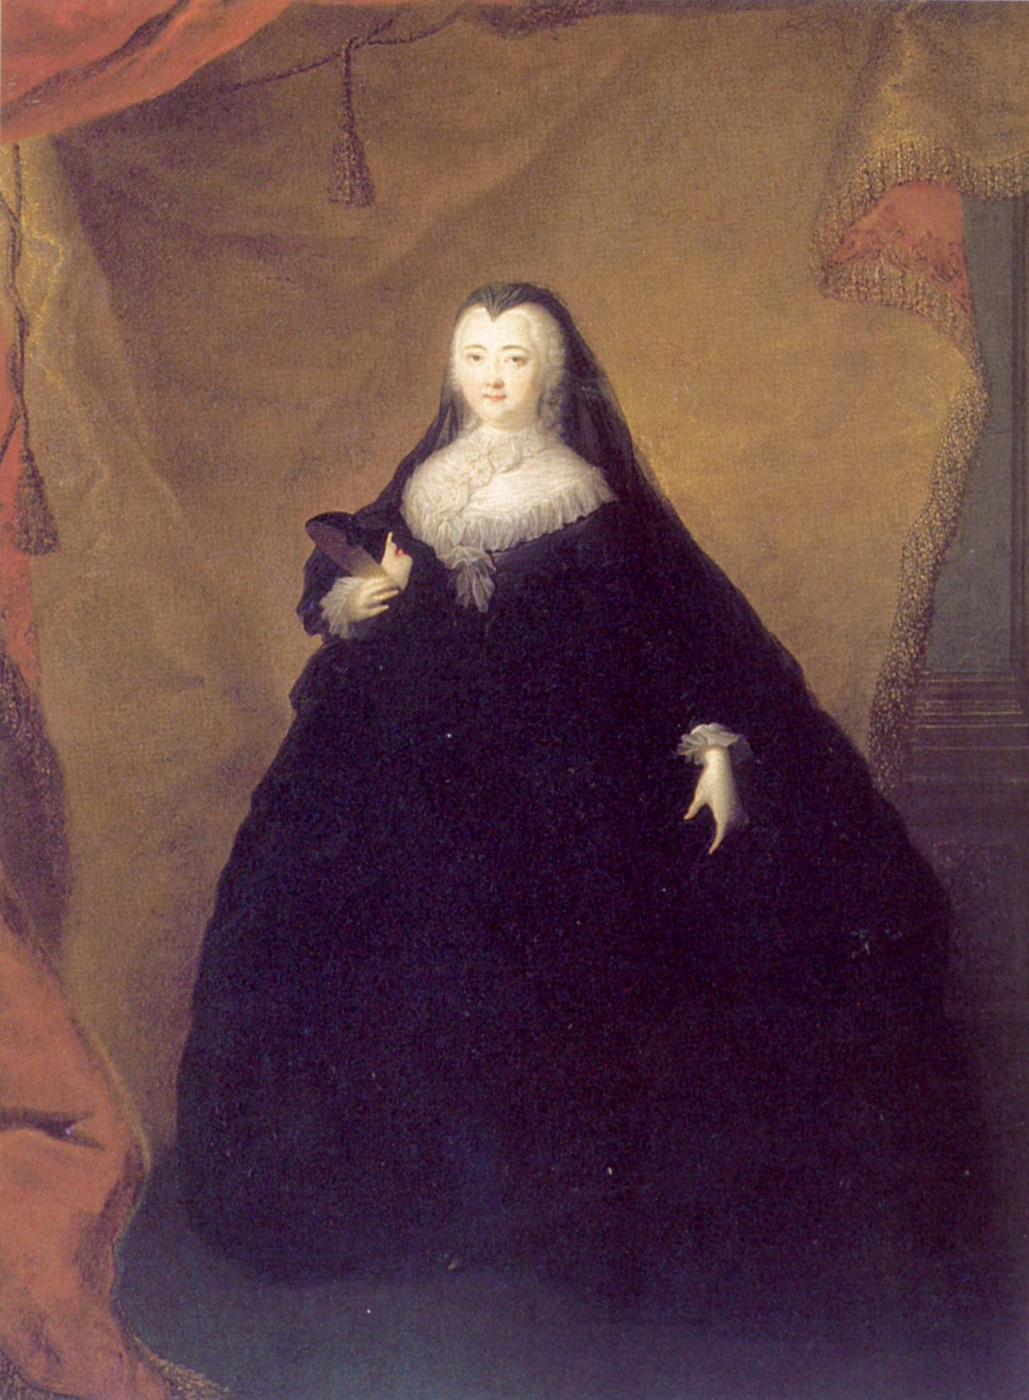 Georg-Christopher Grooth. Portrait of Elizabeth Petrovna in a black masquerade Domino mask in her hands